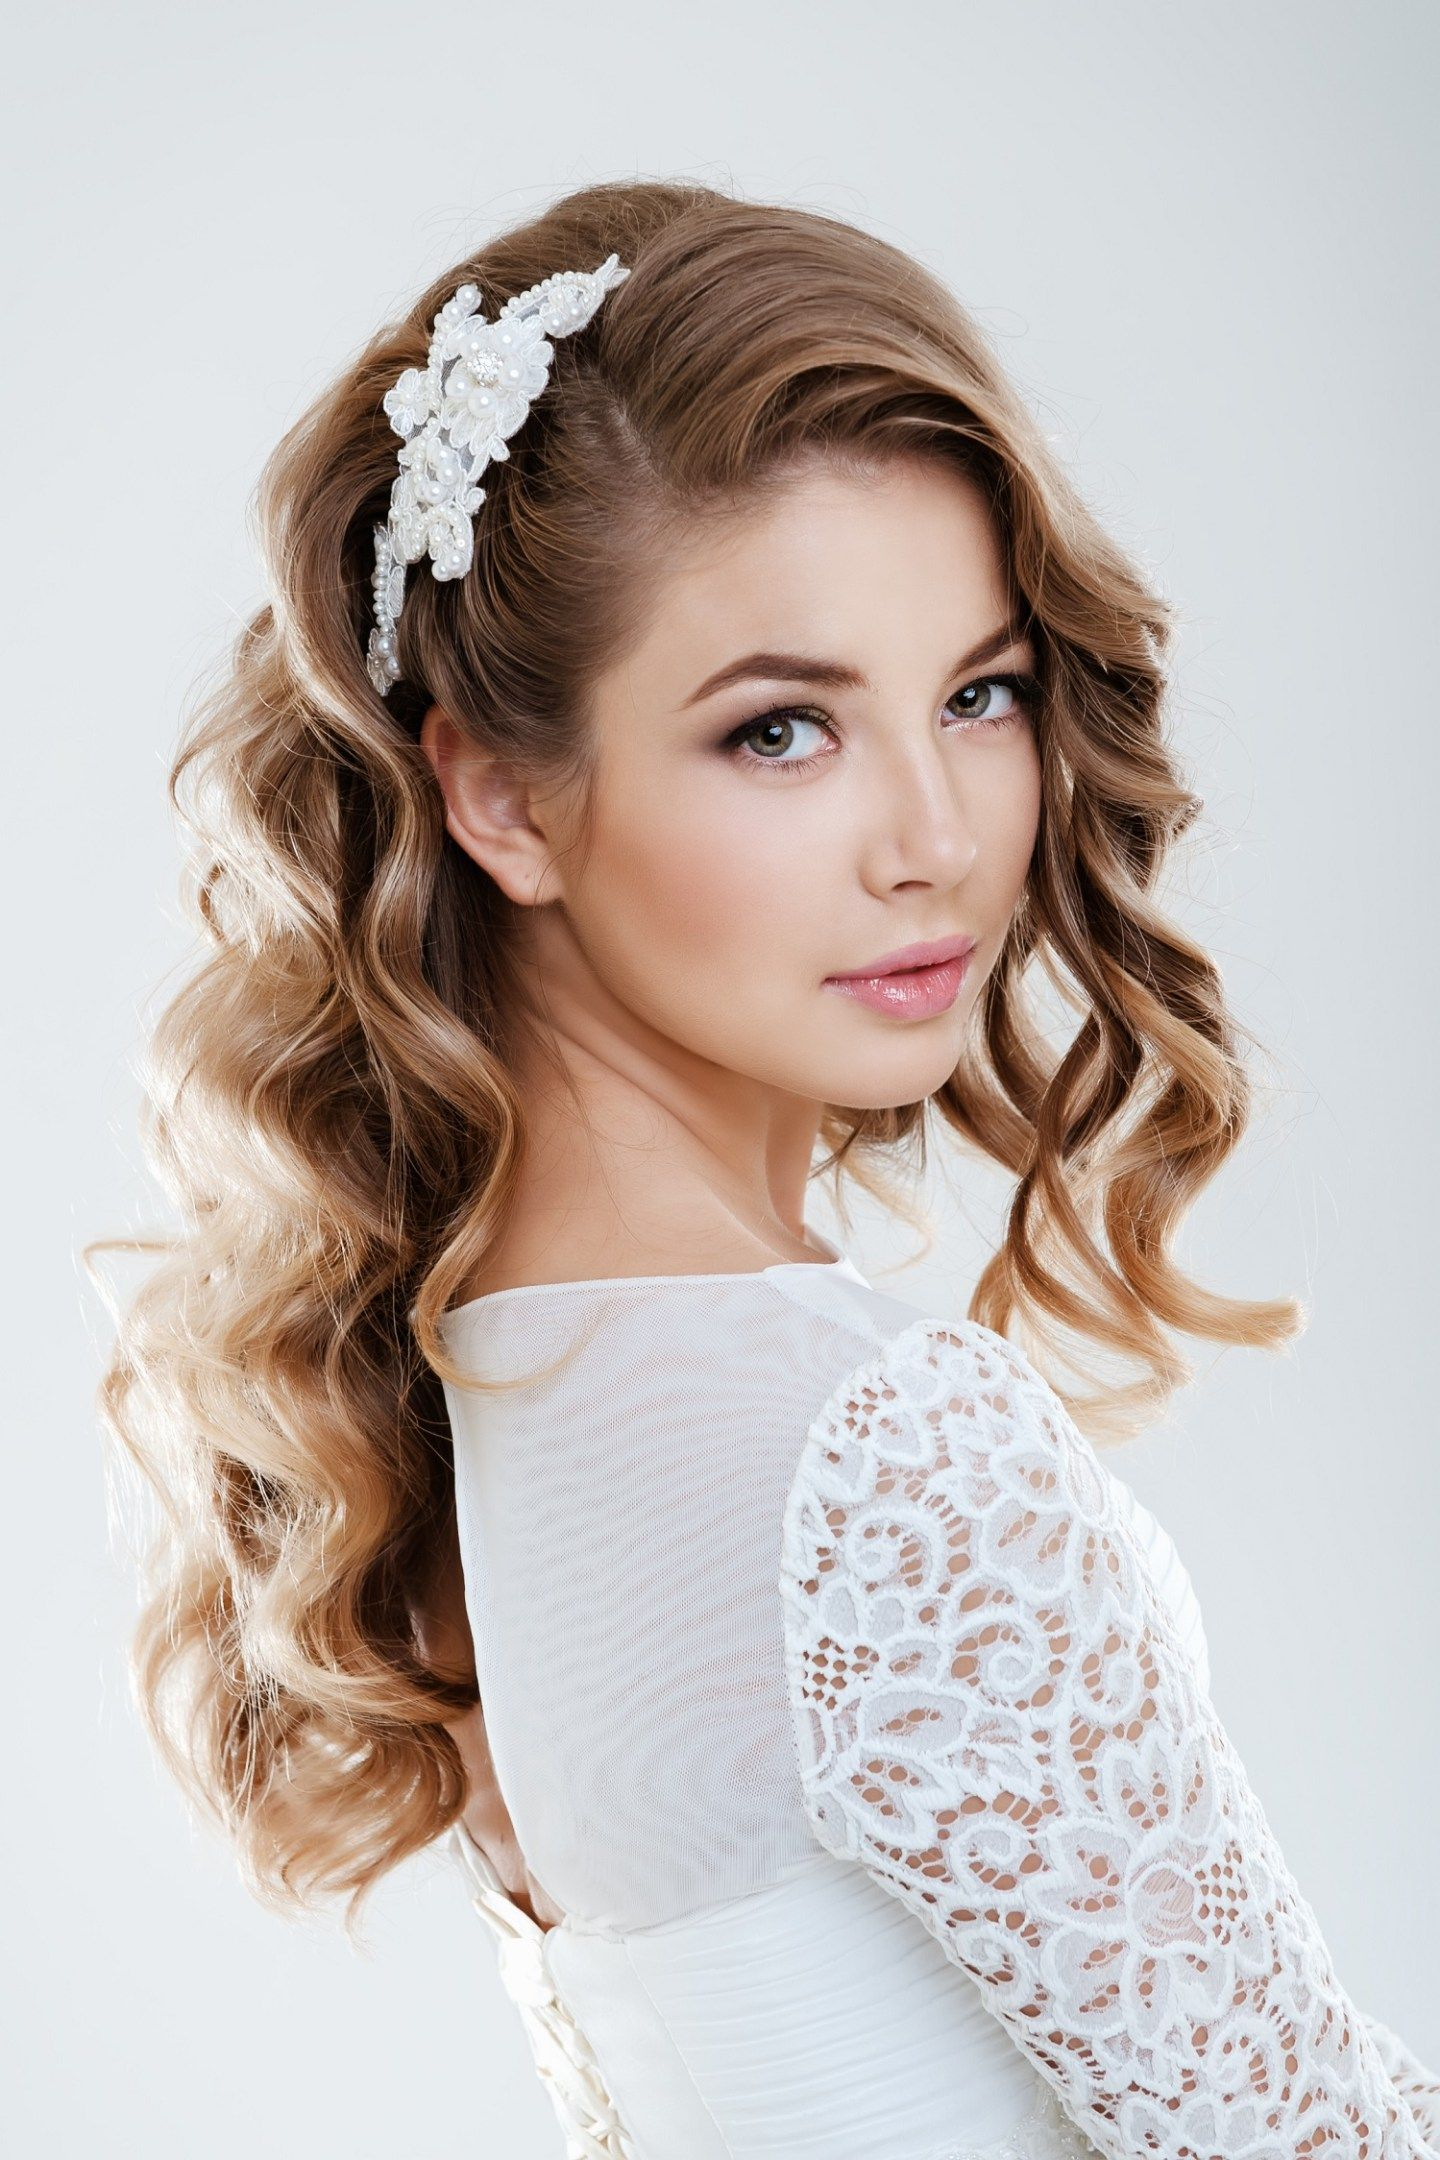 Choosing the perfect hairstyle to match your wedding dress al make